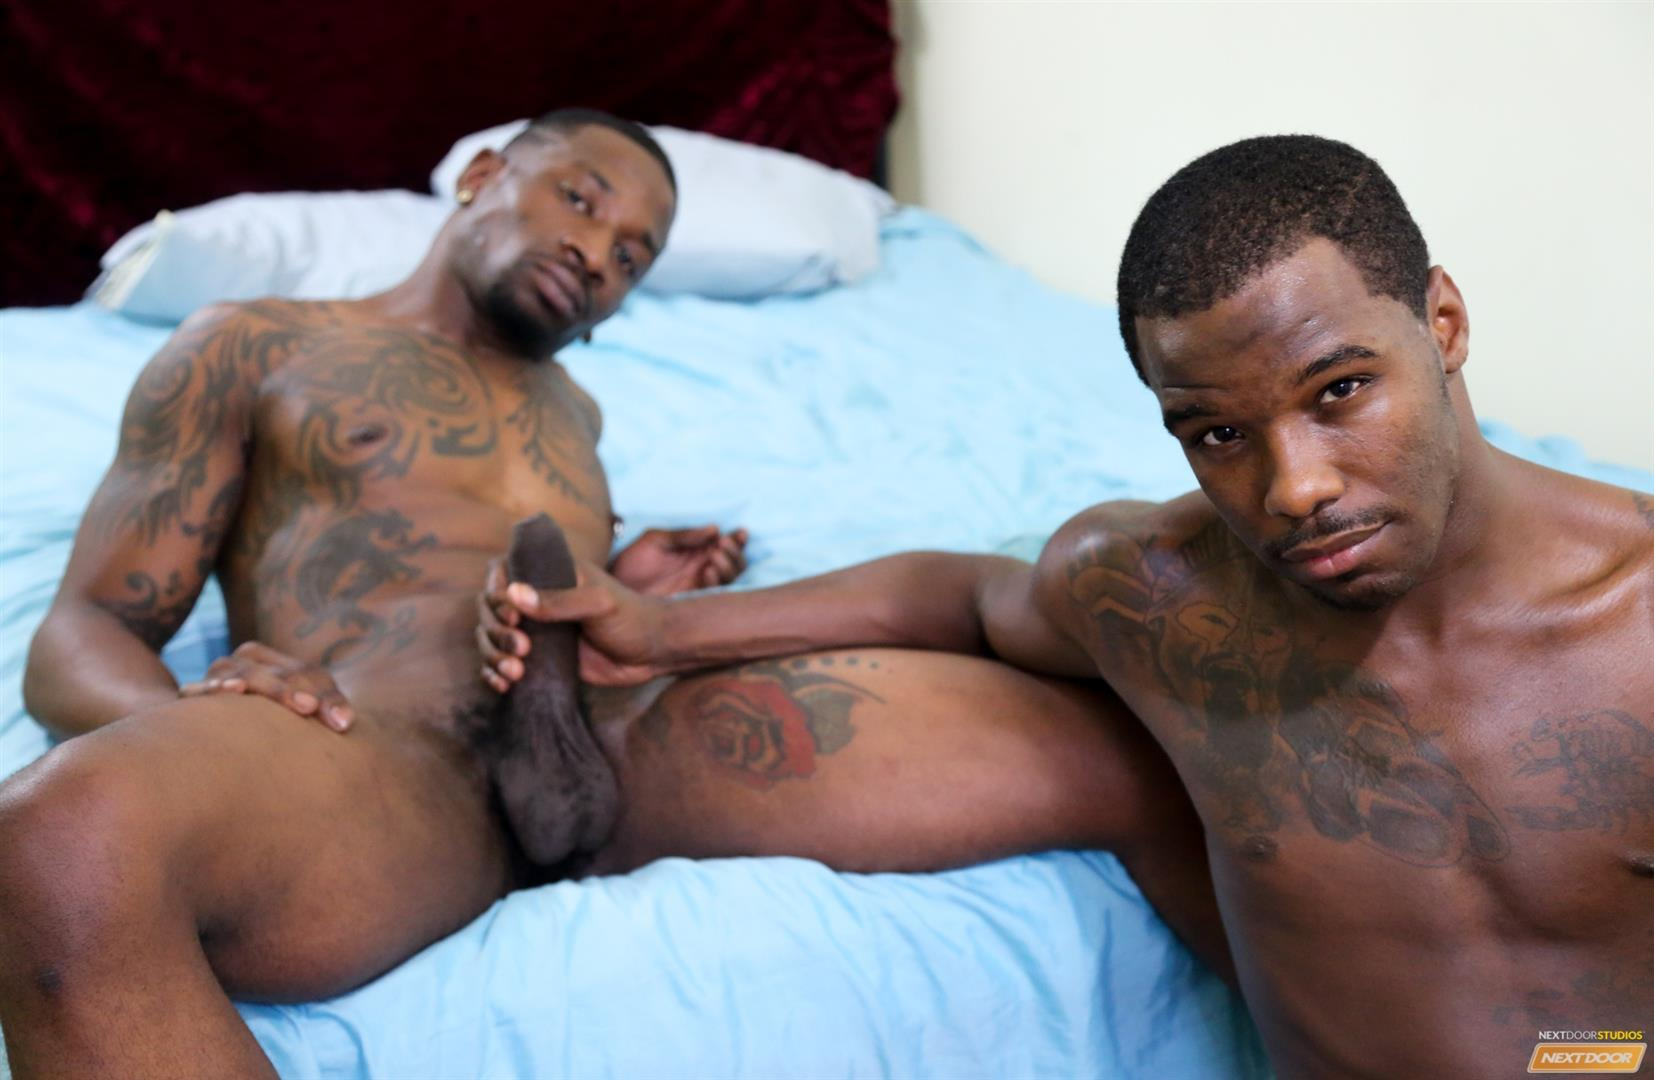 Next Door Ebony Muscular Black Guys Fucking Free Gay Sex Video 09 A Hard Morning Fuck With Two Hung Black Lovers